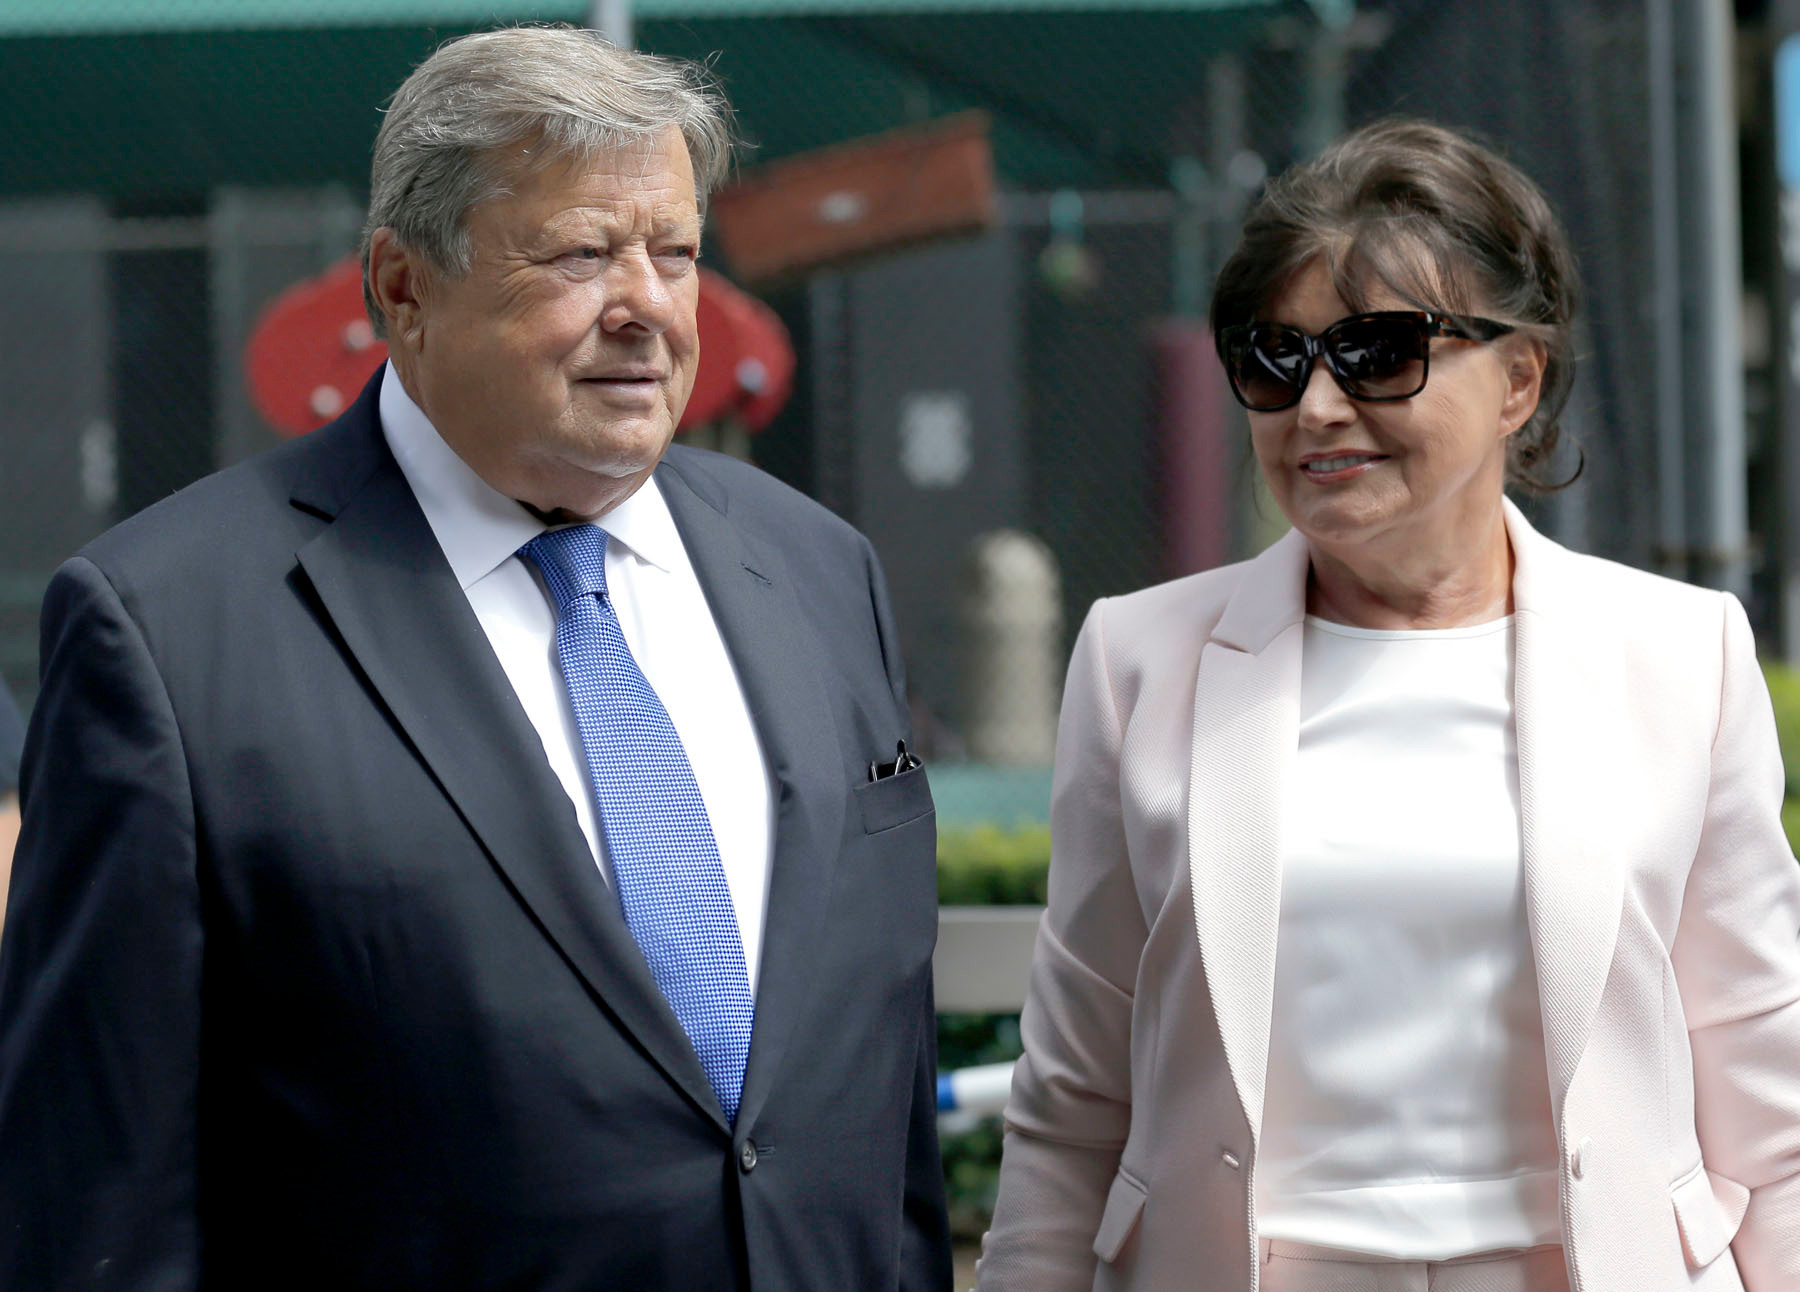 THE ASSOCIATED PRESSViktor and Amalija Knavs First Lady Melania Trump's parents took the citizenship oath on Thursday in New York City